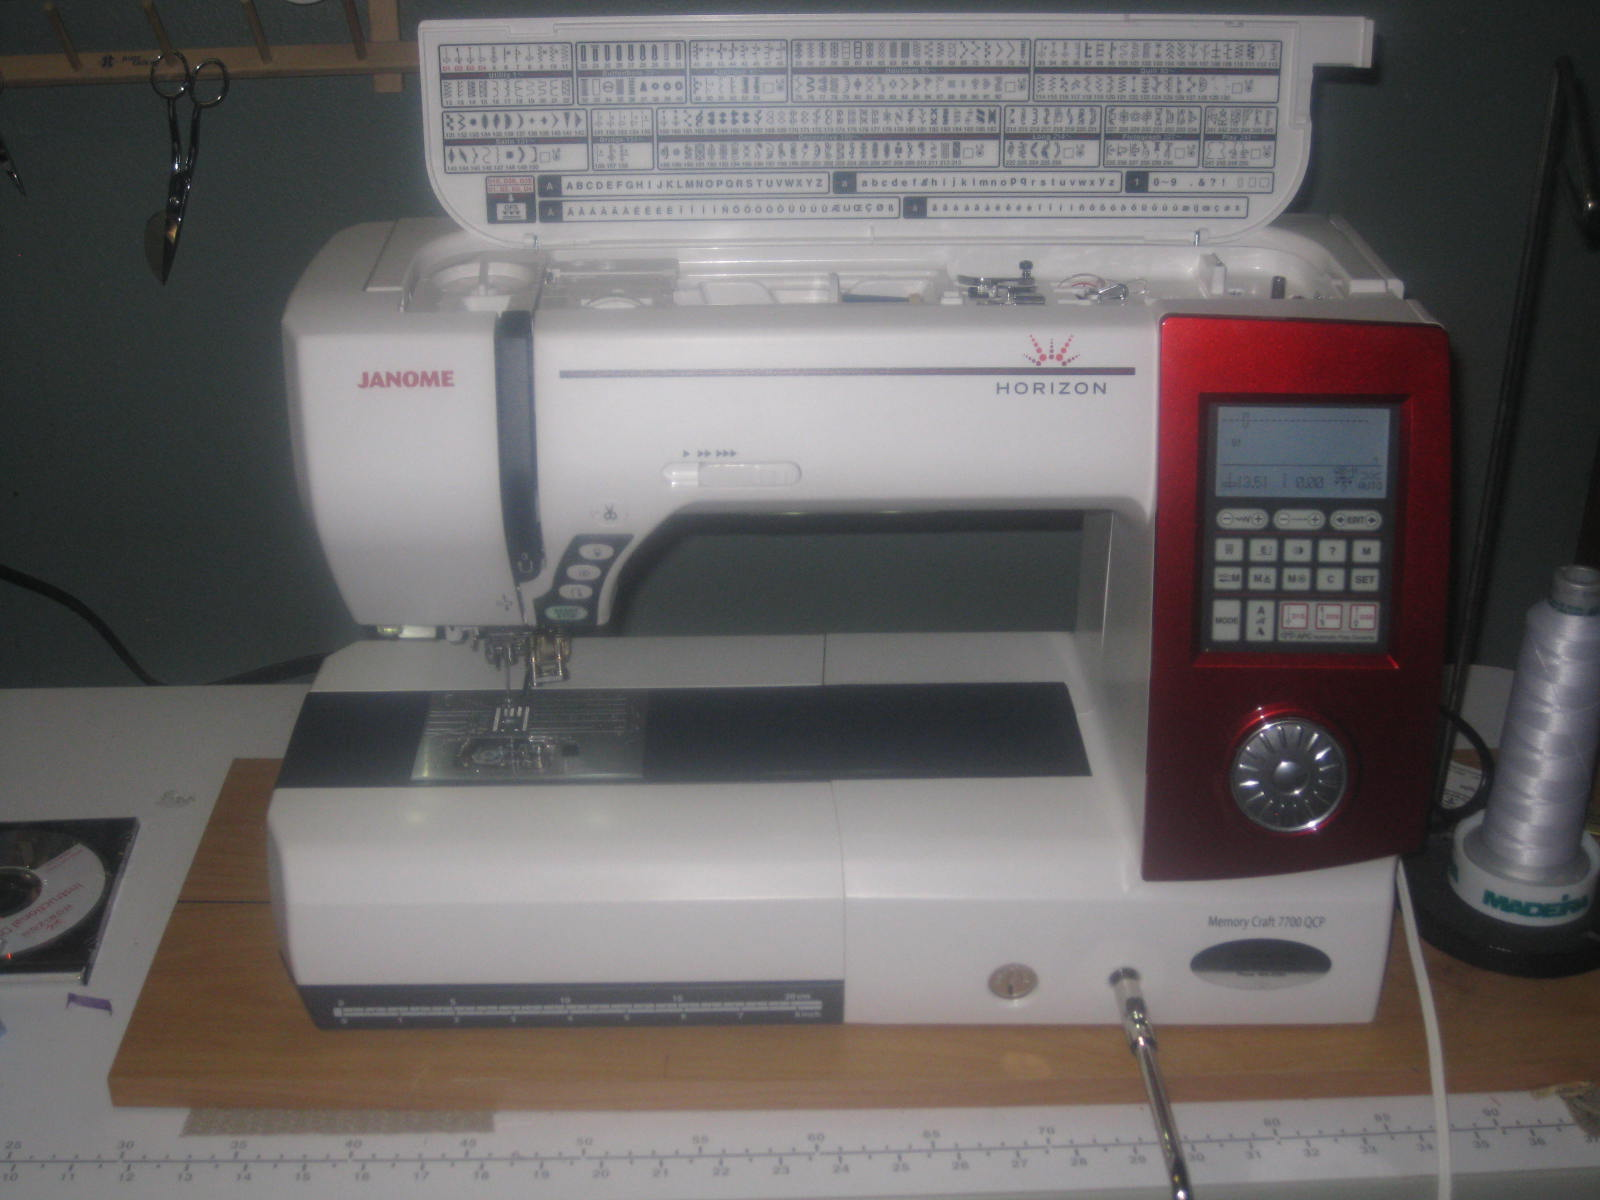 Janome memory craft 6600 - I Ve Read That People Have Gotten The 7700 Table Added In Or Some Other Nice Items I Traded In My 6600 For It And Got A Decent Price For It